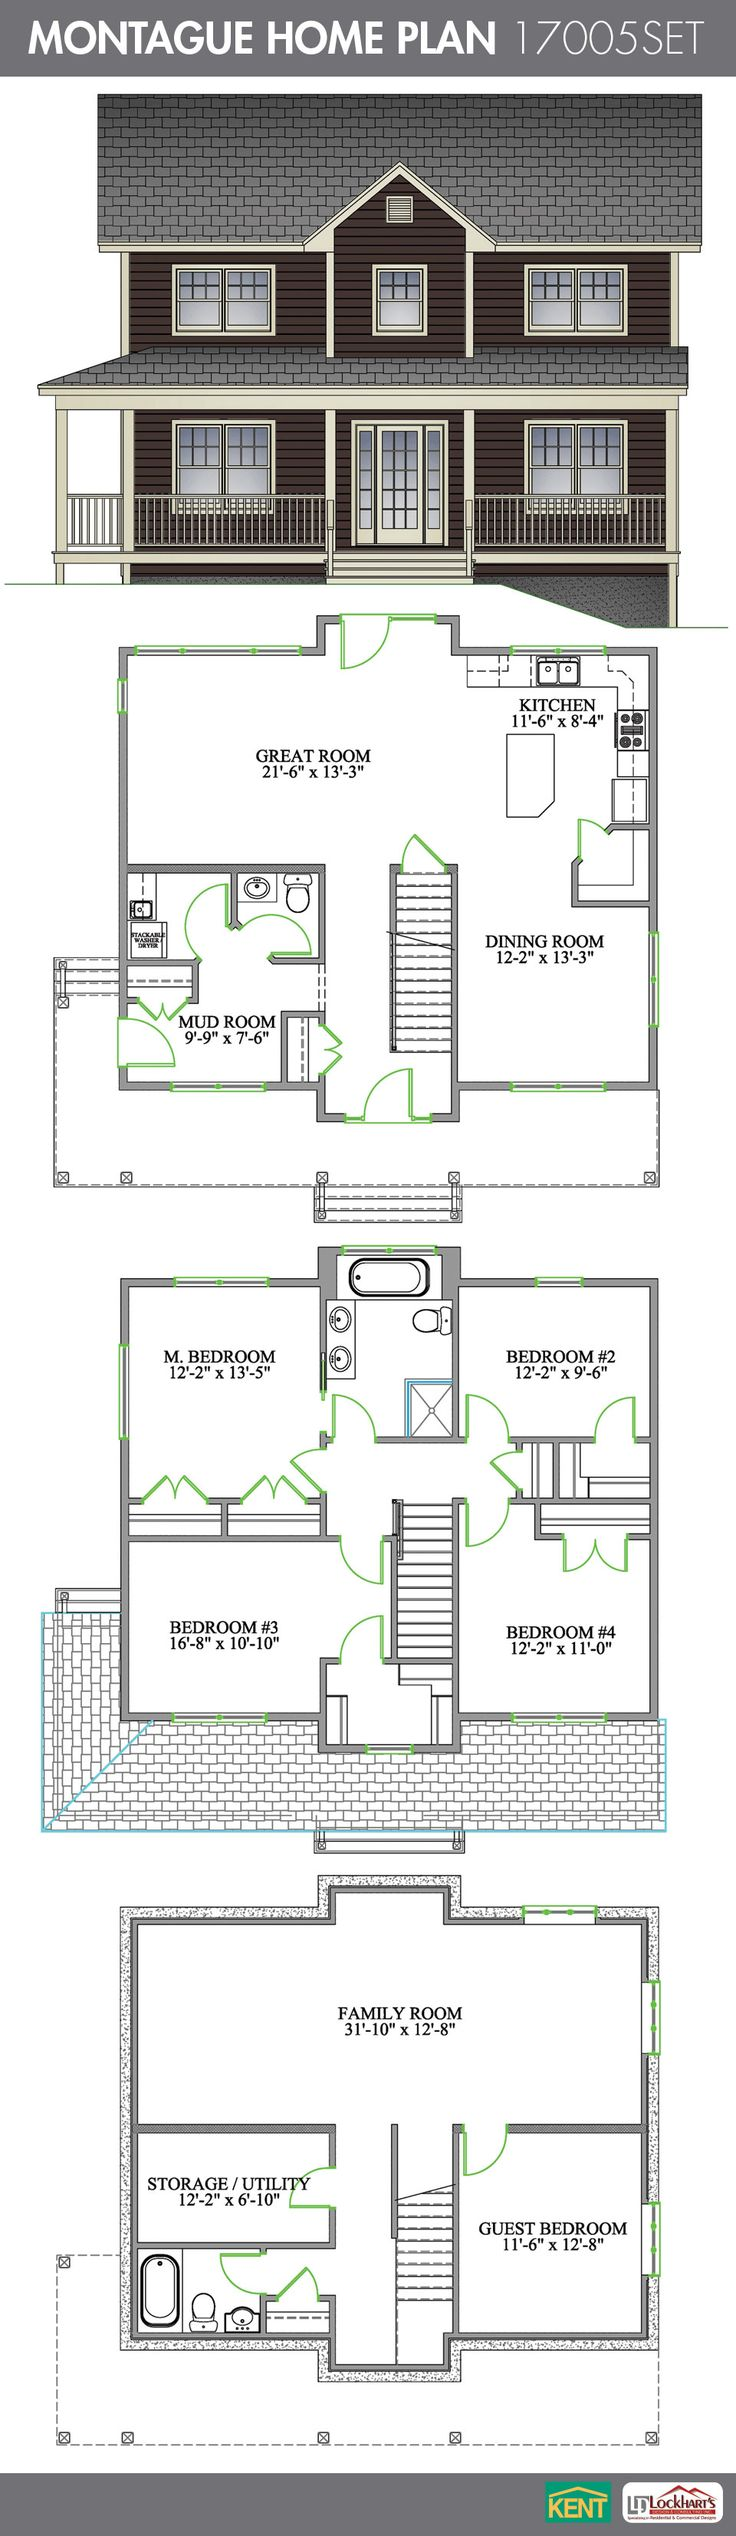 Montague 5 Bedroom 2 1 2 Bathroom Home Plan The Main